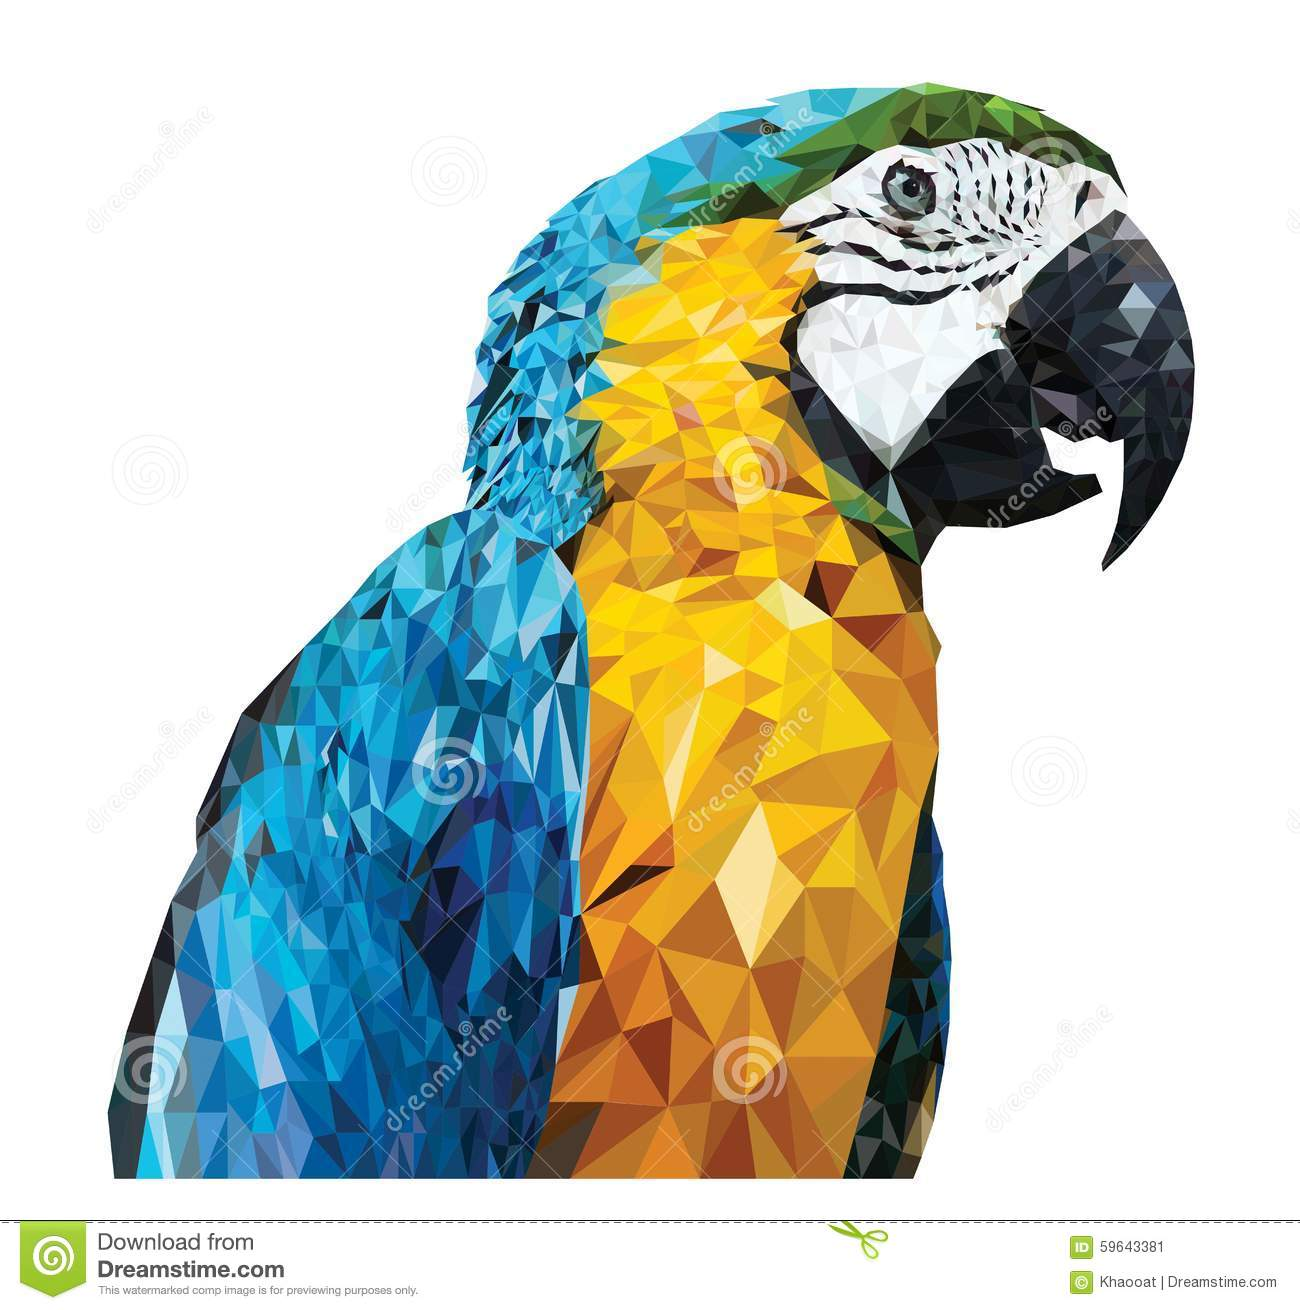 Parrot_Low poly design